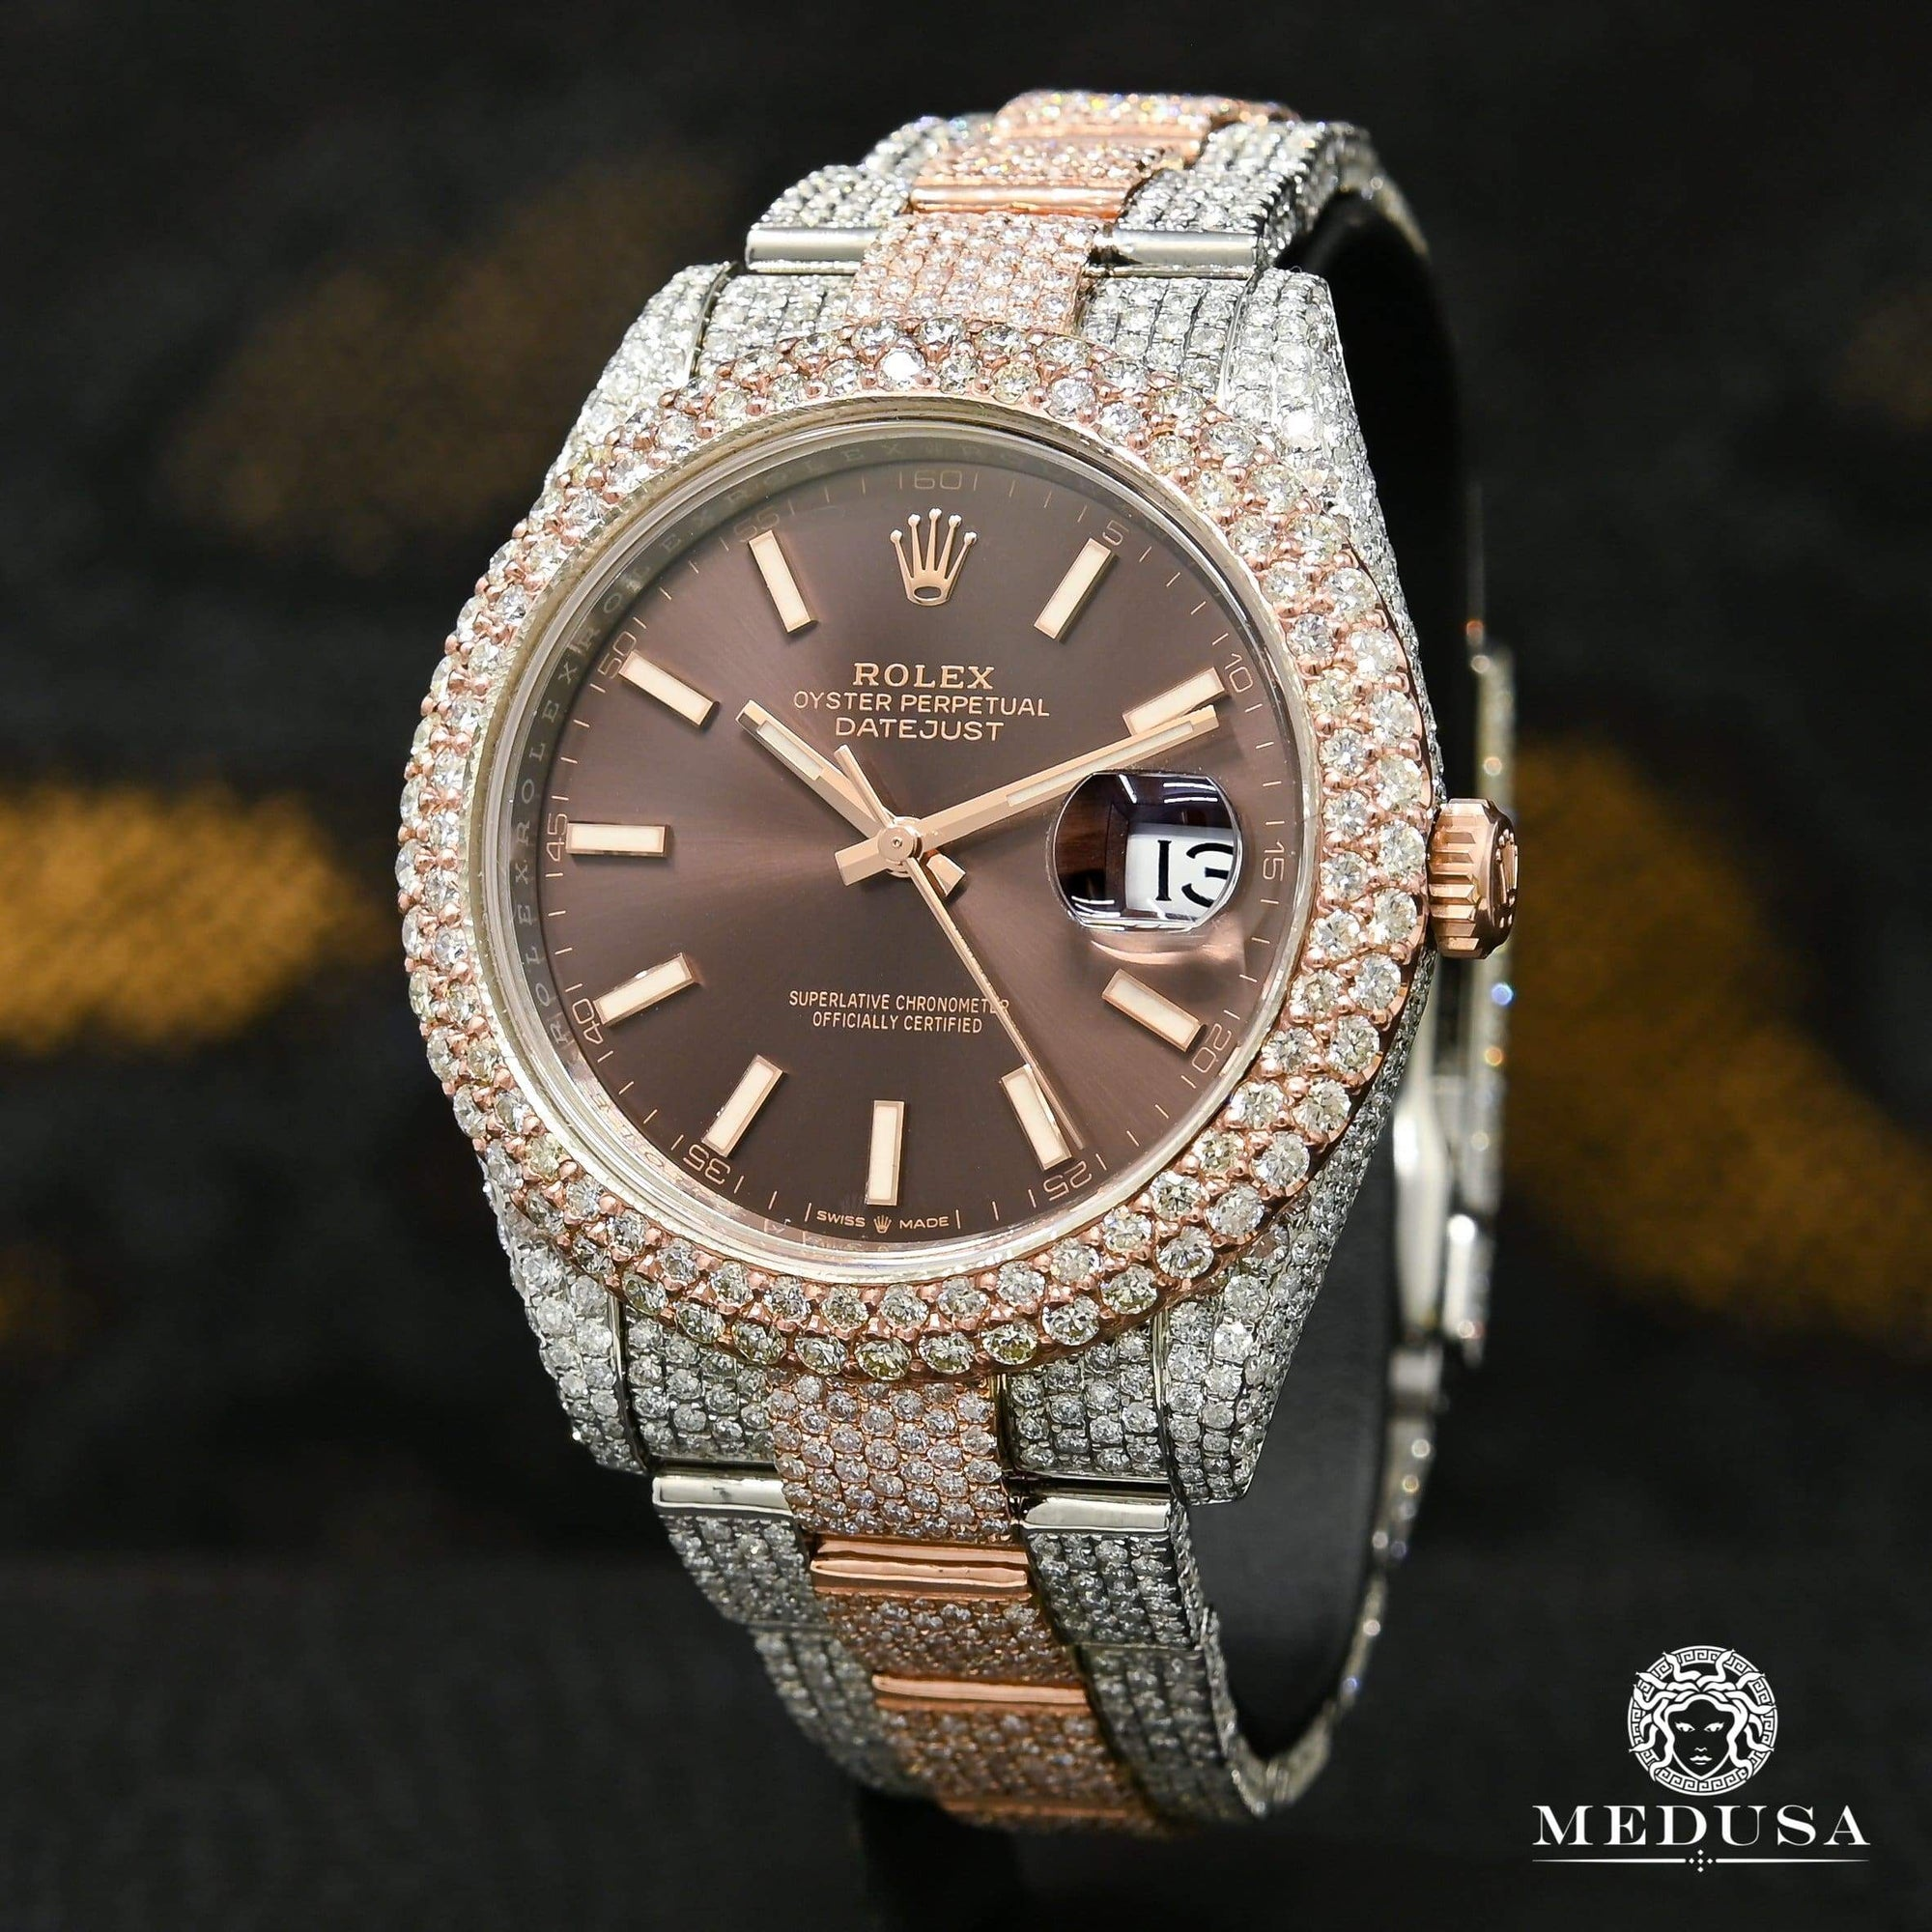 Rolex Datejust 41mm - Honeycomb Everose